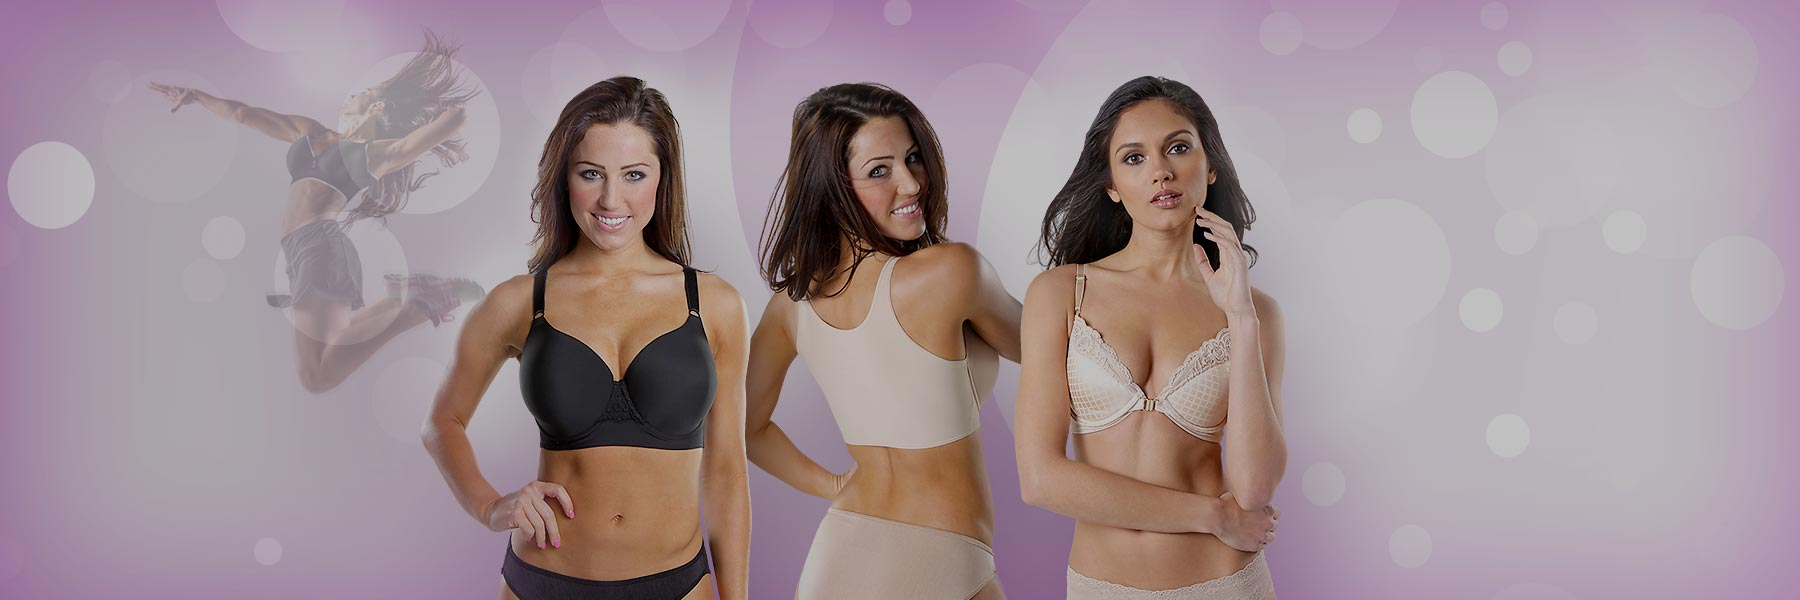 45182867f3 Cropped length Back Smoothing Bras with Underwire and No-slip ...